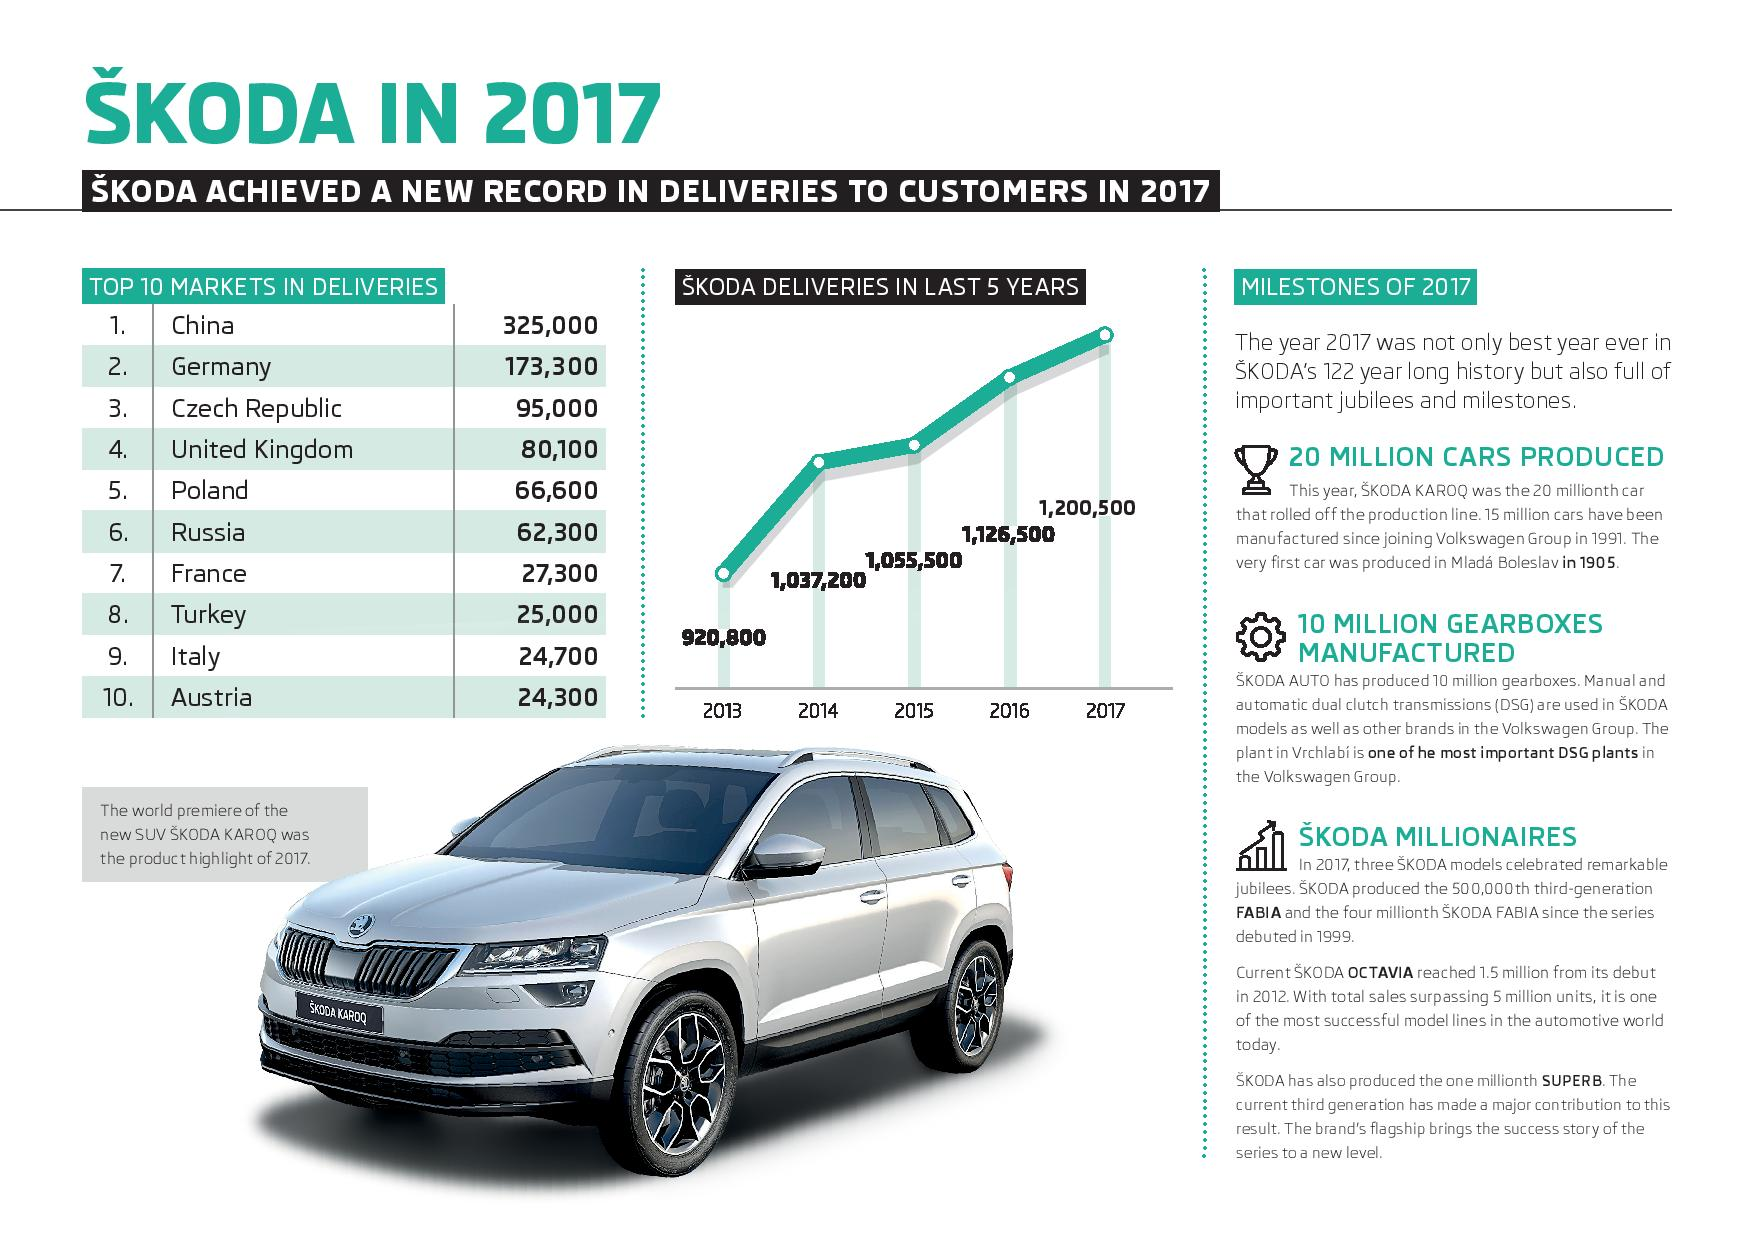 180116-Infographic-SKODA-Deliveries-to-customers-in-2017-Top-Markets-page-001